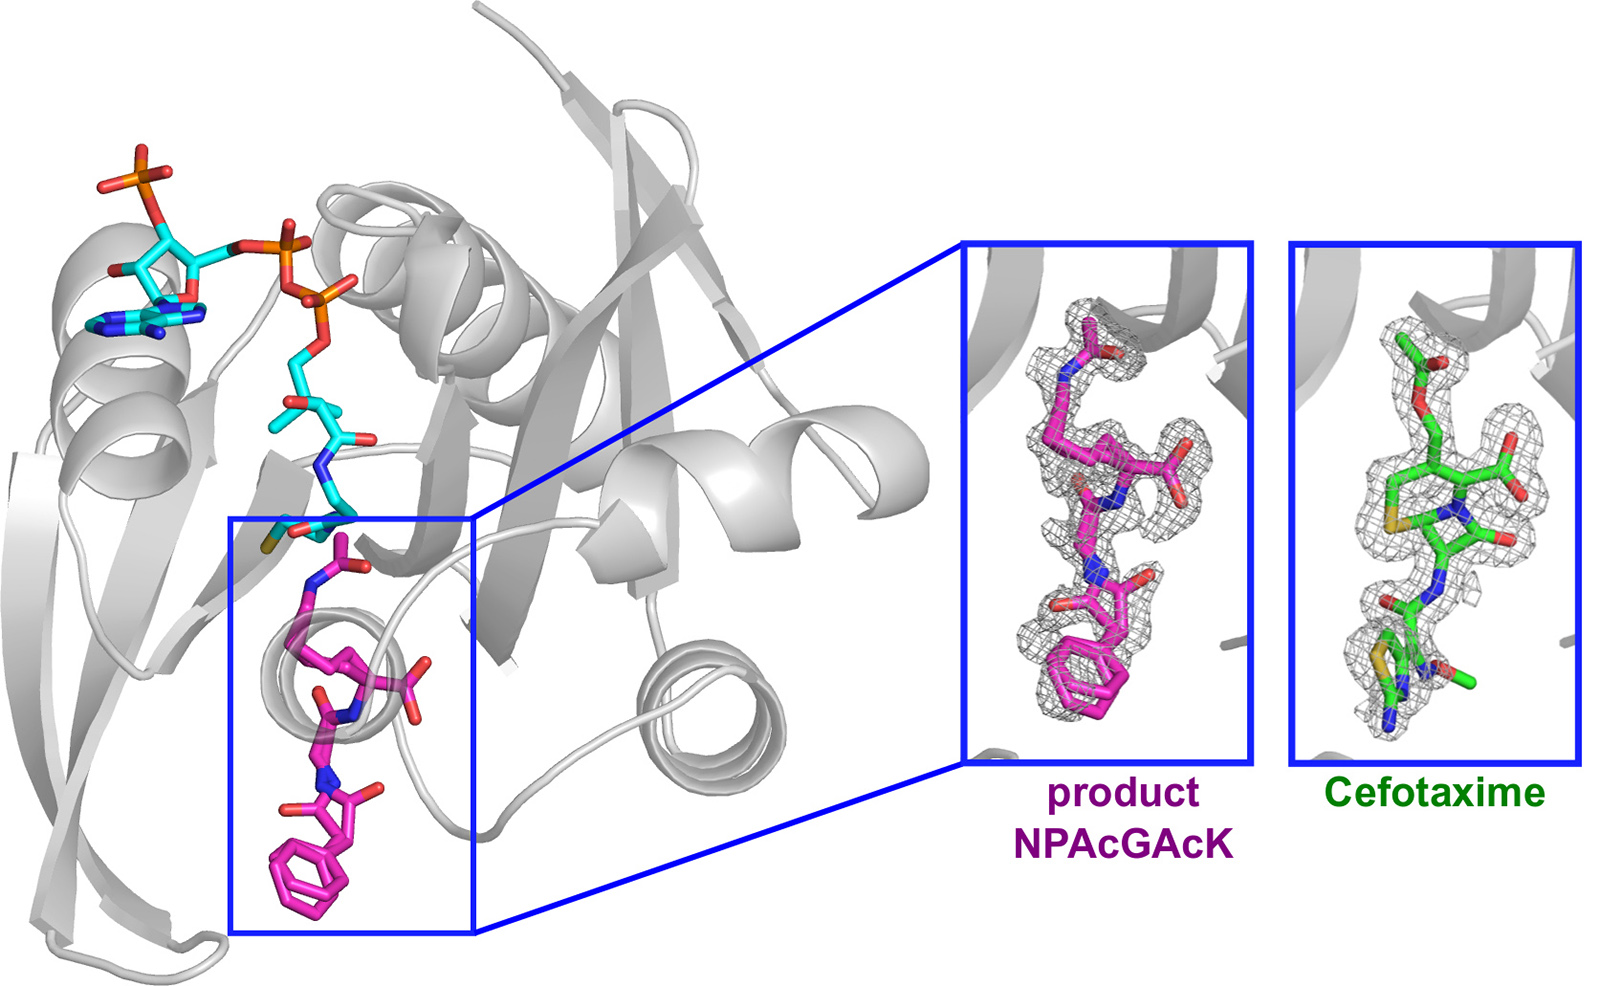 In a 3D structure of the protein, the binding site is shown in pink, representing a potential drug target. The green molecule shows binding of an antibiotic to the protein.